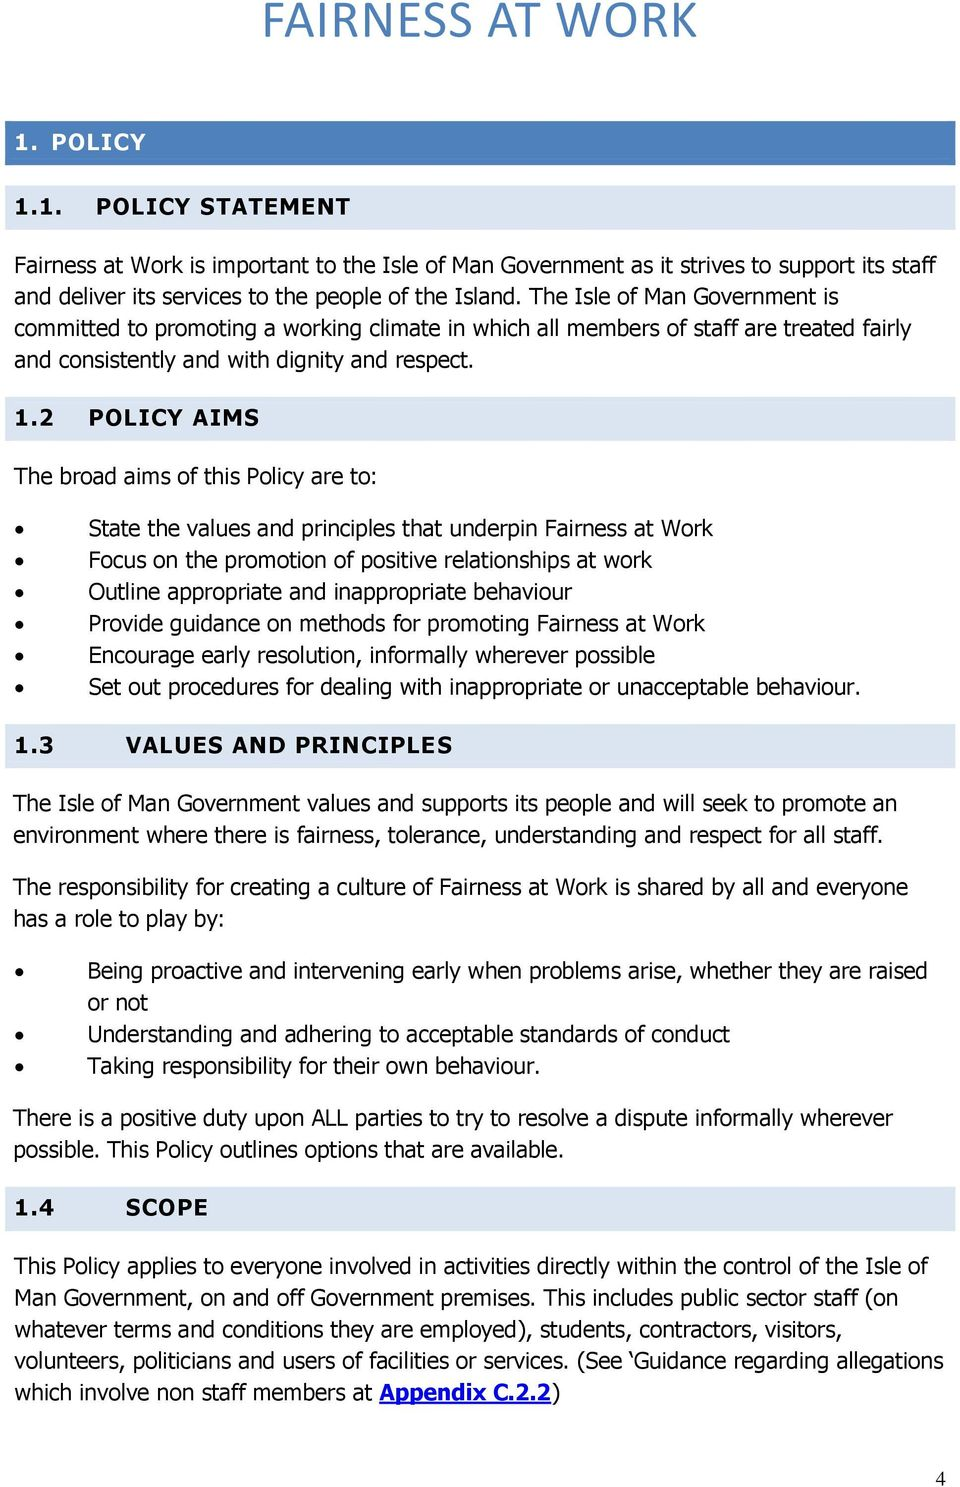 2 POLICY AIMS The broad aims of this Policy are to: State the values and principles that underpin Fairness at Work Focus on the promotion of positive relationships at work Outline appropriate and